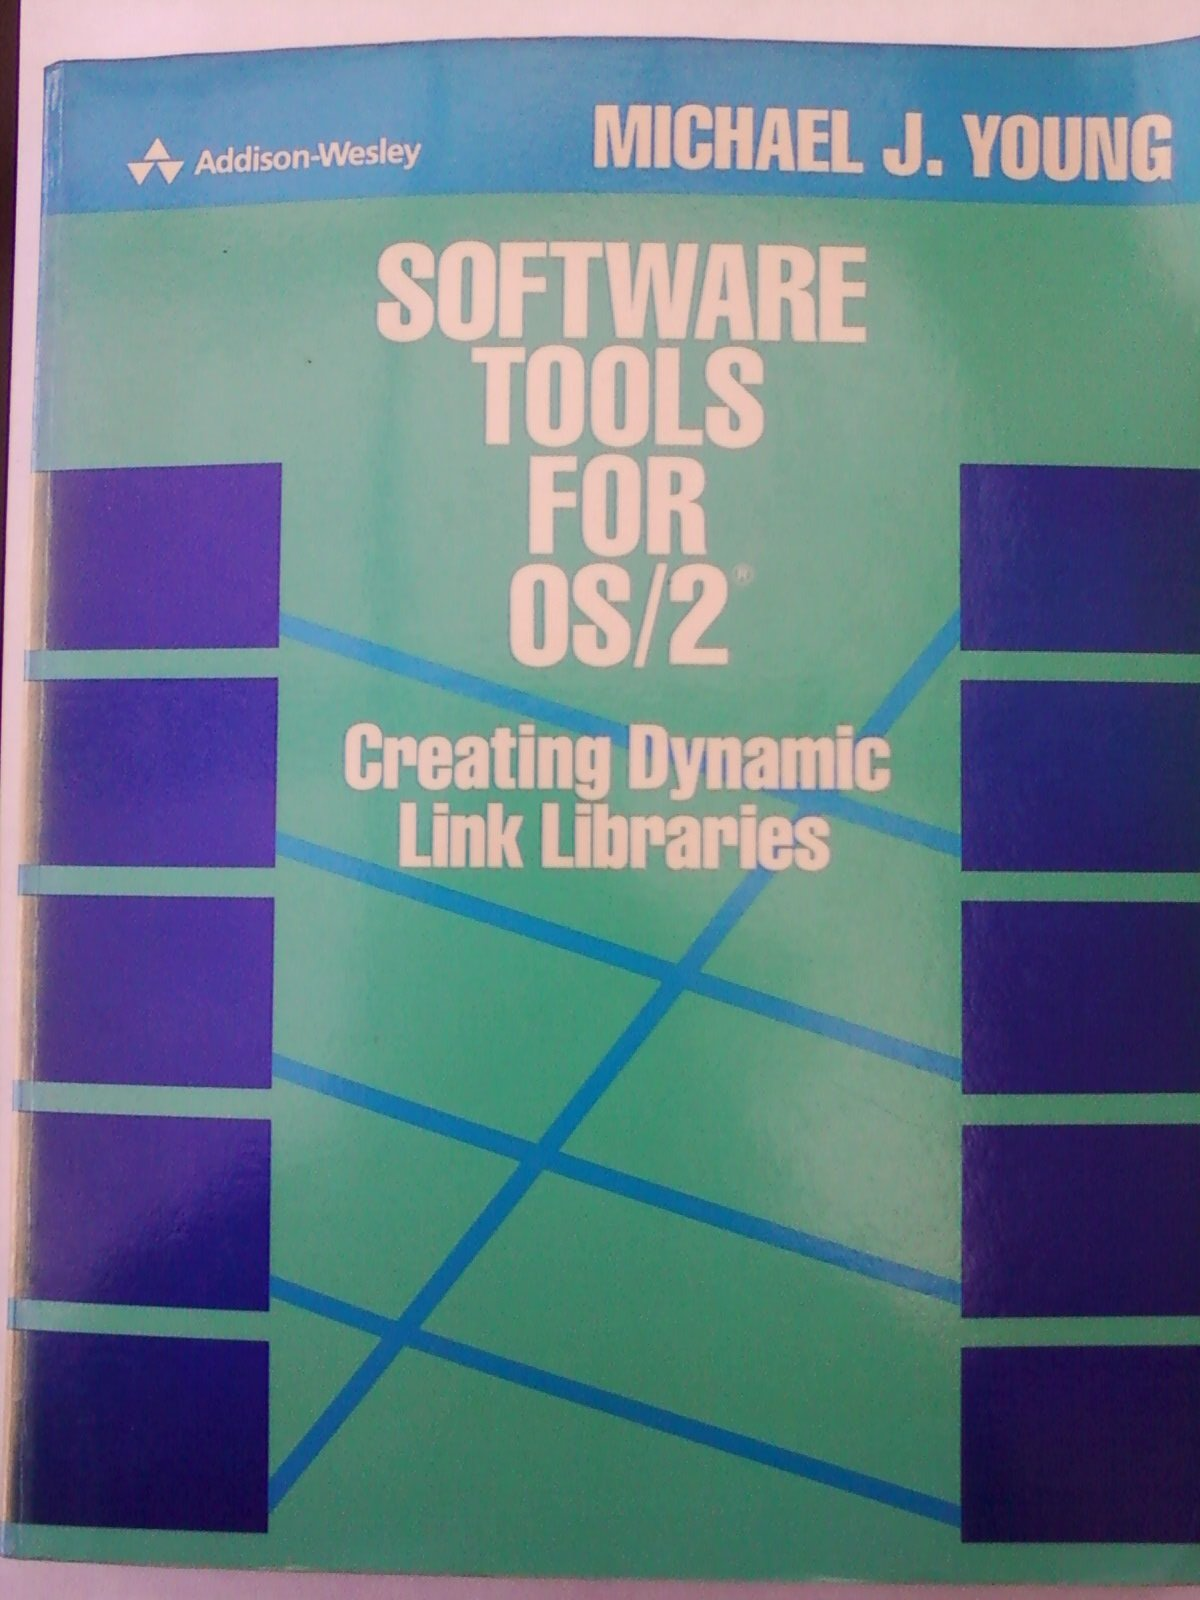 Software Tools for Os/2: Creating Dynamic Link Libraries